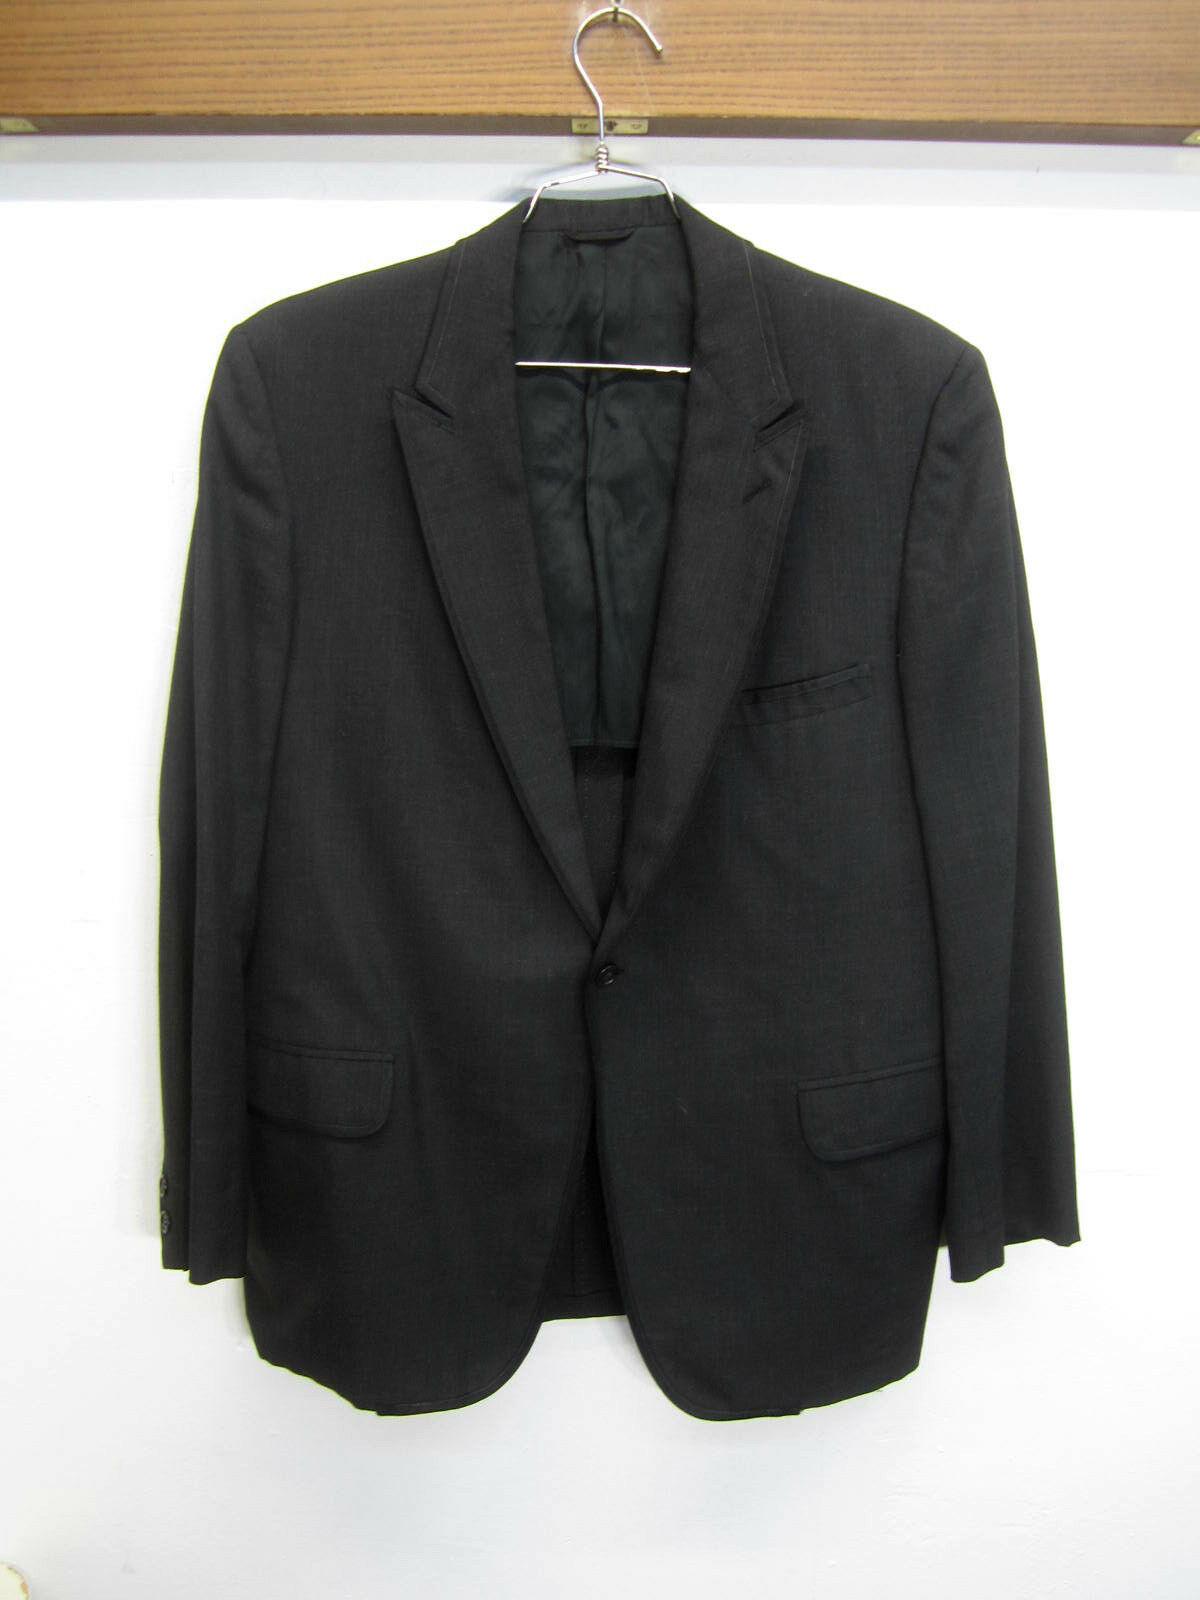 Vtg Lord West Blazer Sport Coat charcoal wool one button sz 42R made in USA